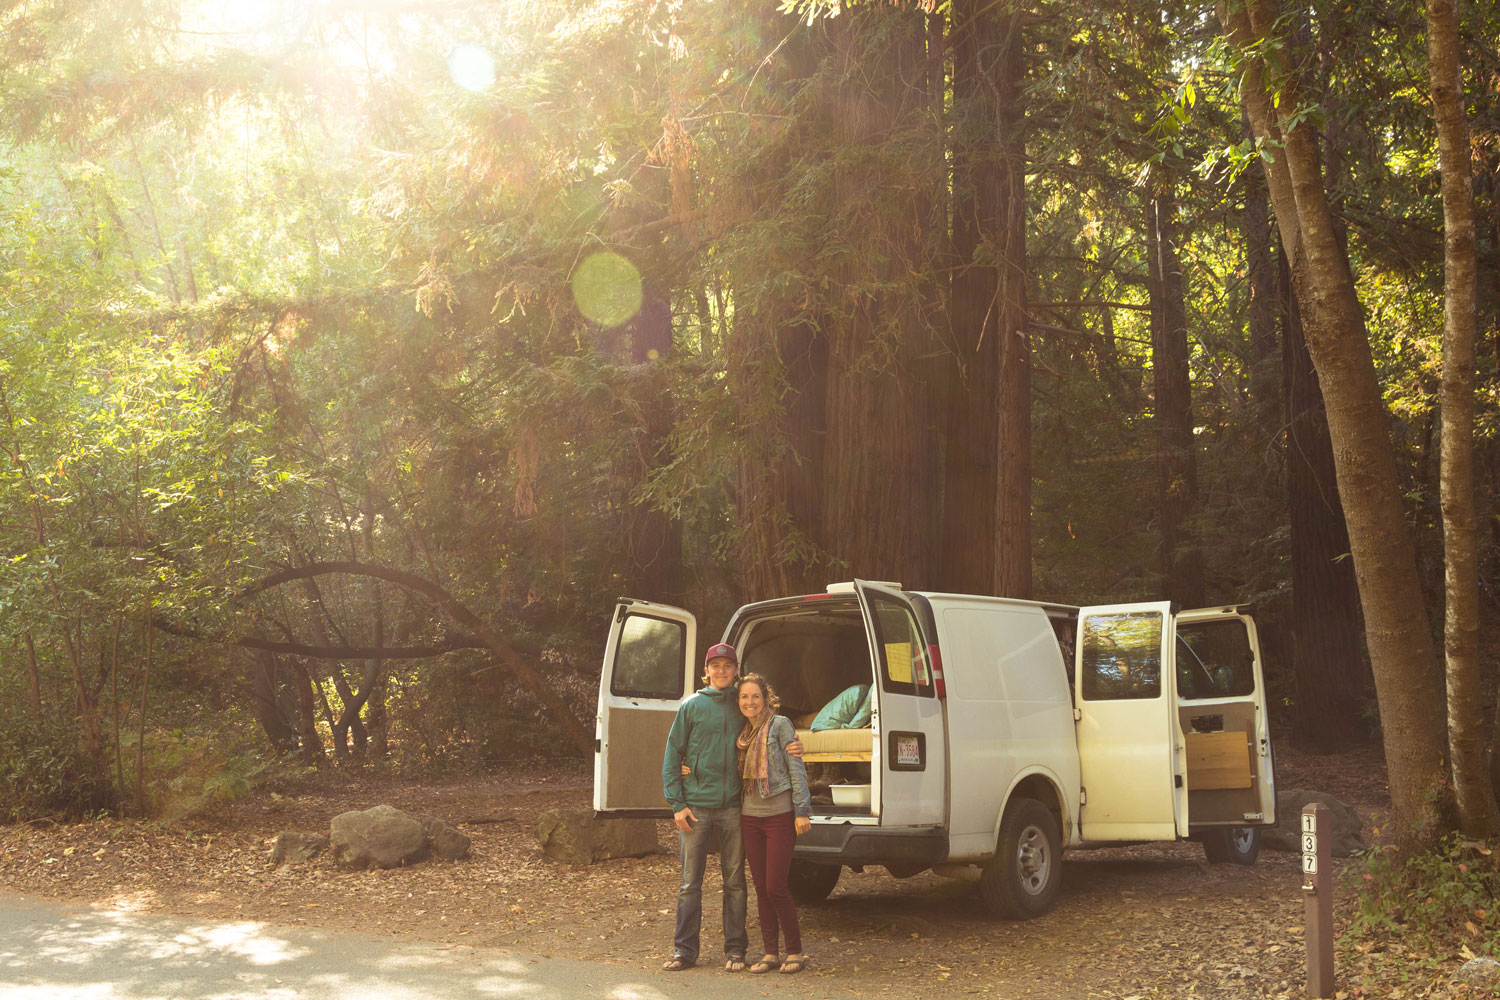 Camping-in-the-Redwoods_Big-Sur-1_web.jpg